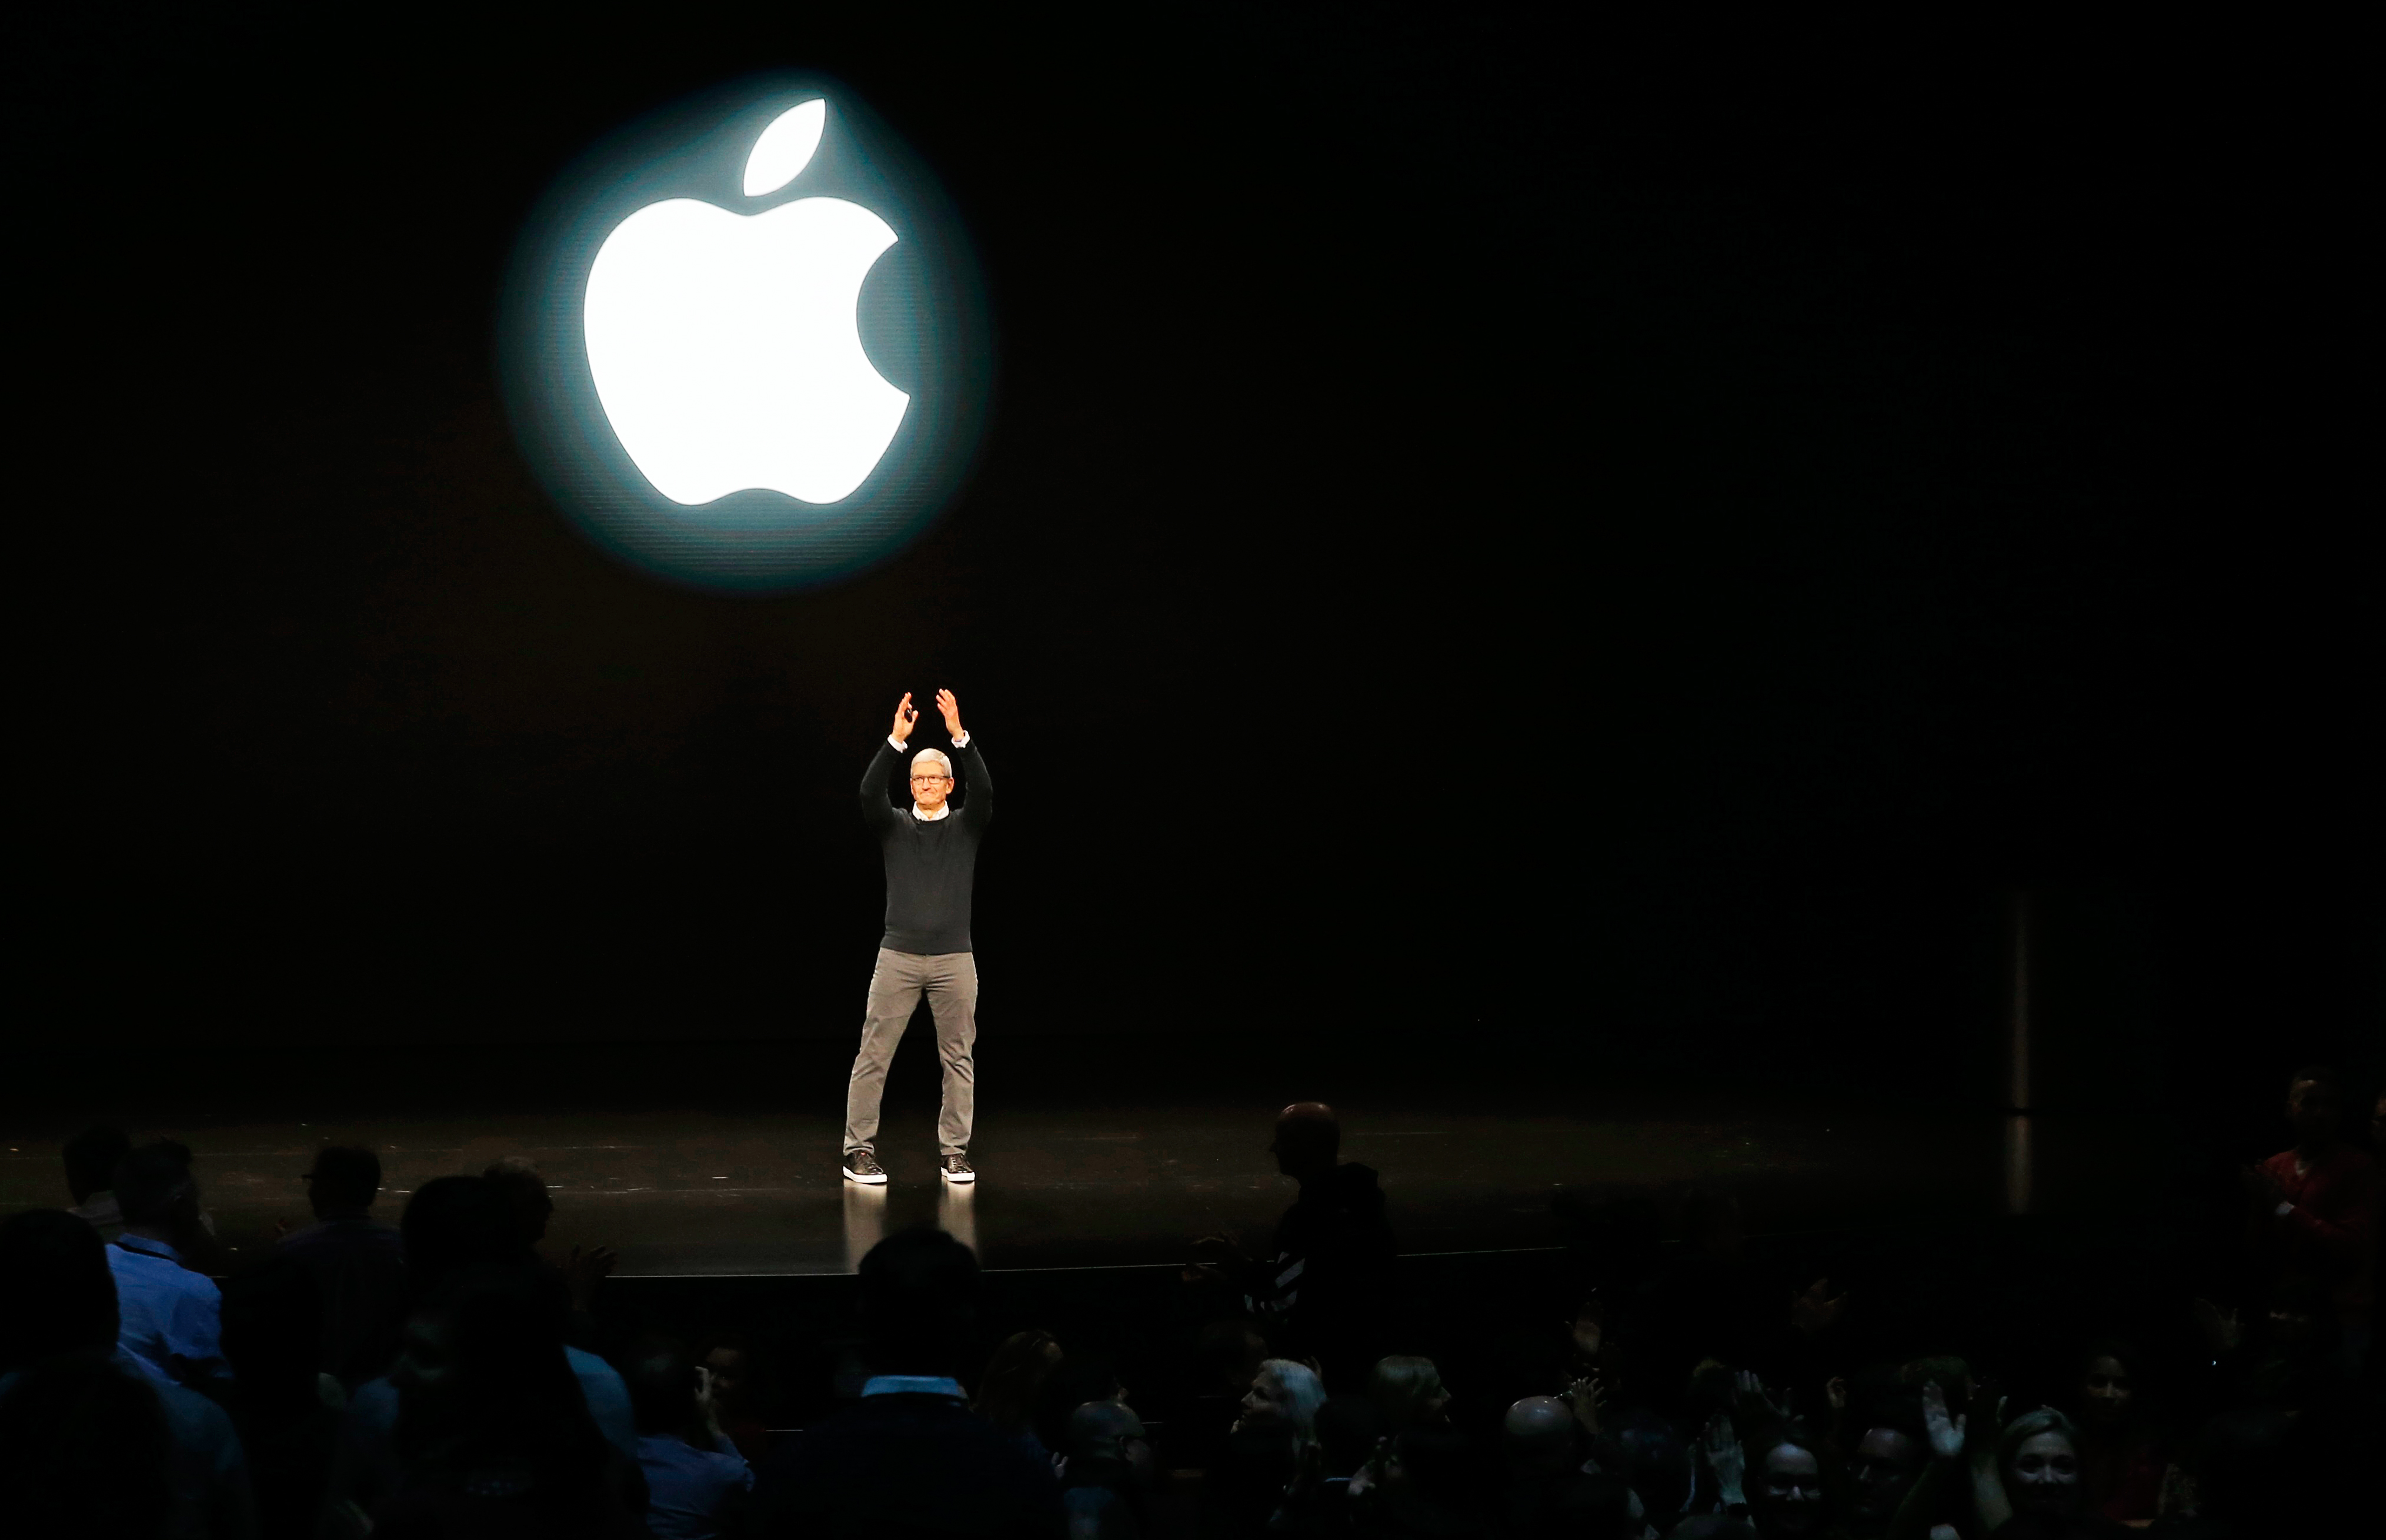 Tim Cook, CEO of Apple, says farewell at the end of an Apple special event at the Steve Jobs Theater in Cupertino, California, U.S., March 25, 2019. REUTERS/Stephen Lam